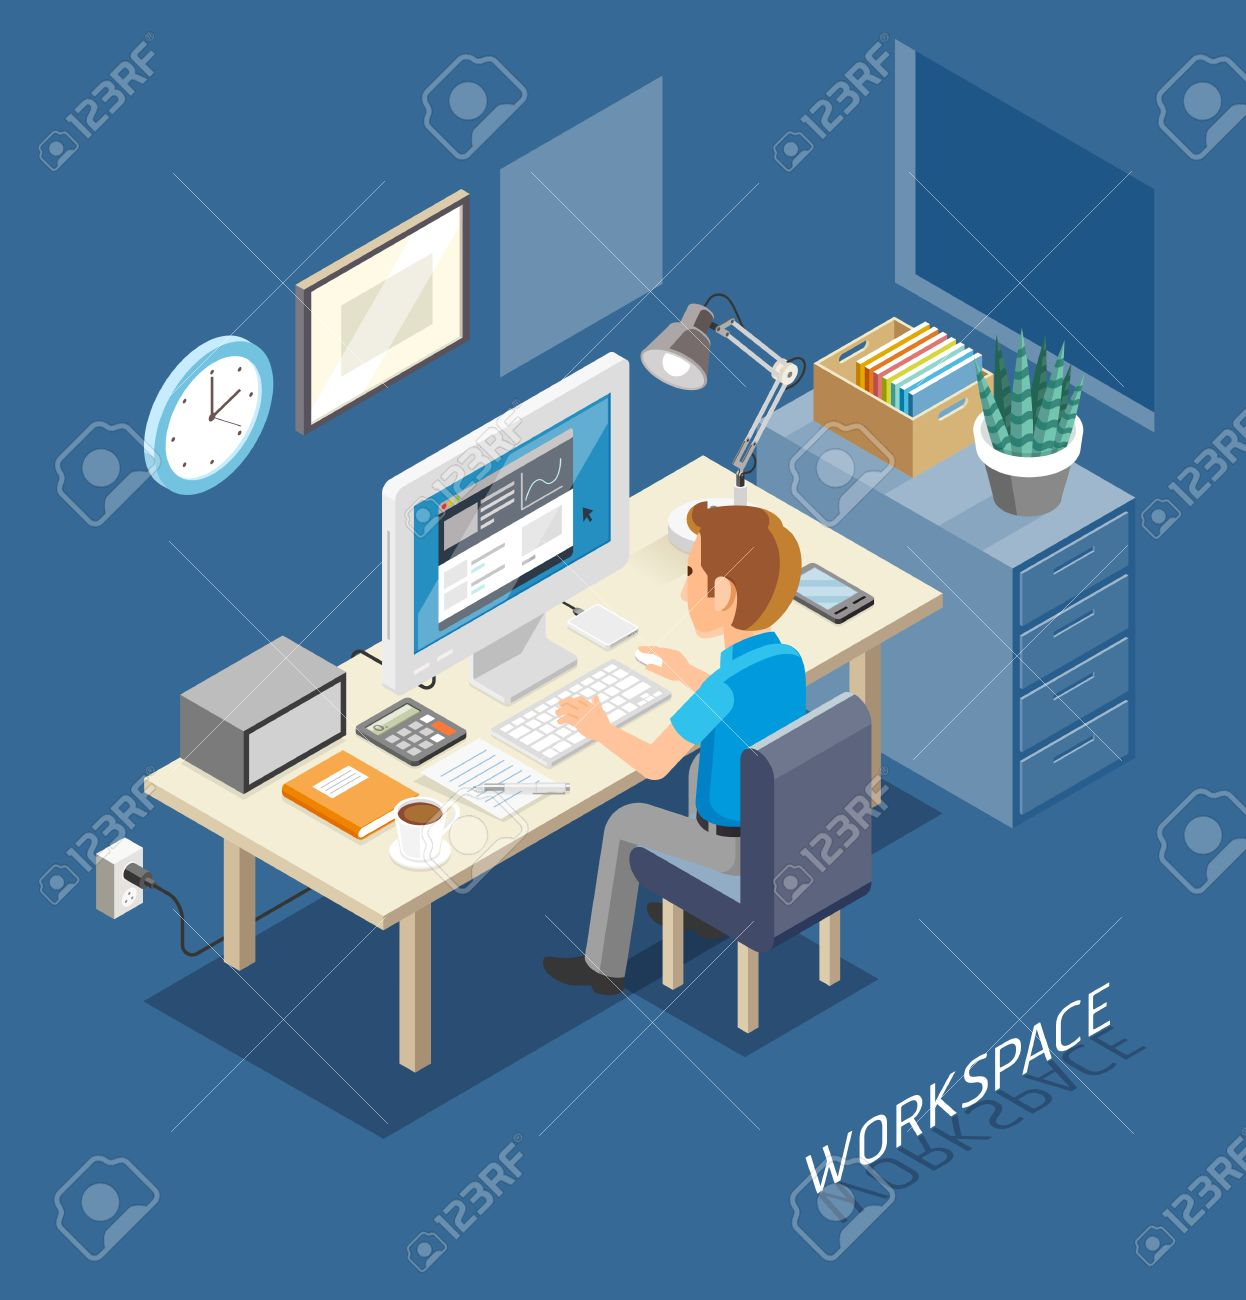 Work Space Isometric Flat Style. Business People Working On An Office Desk. Illustration. - 50958314